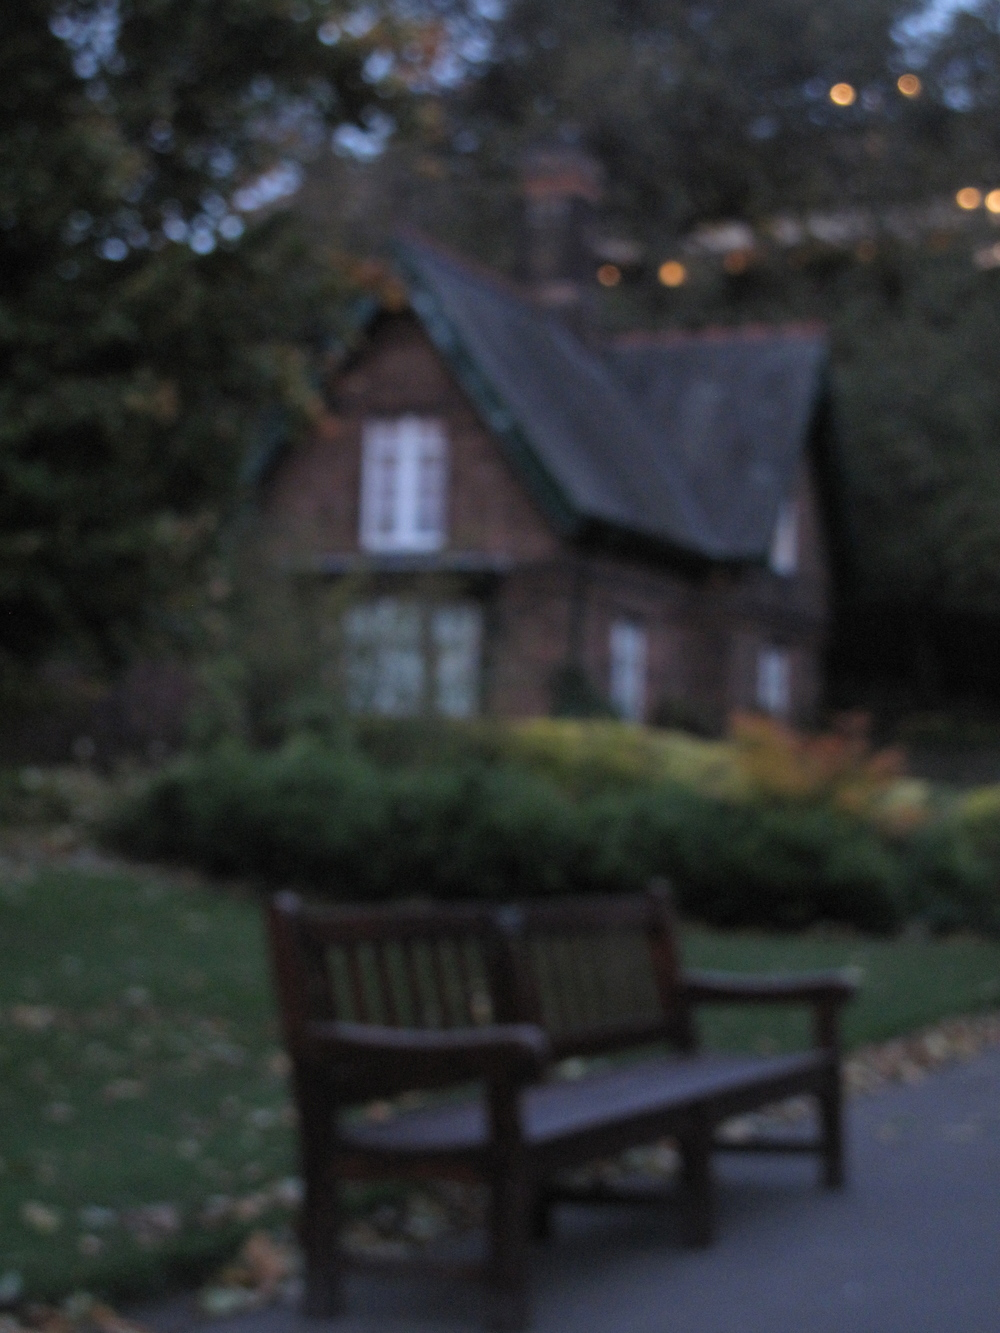 Princes Street Gardens at dusk - blurry photography.